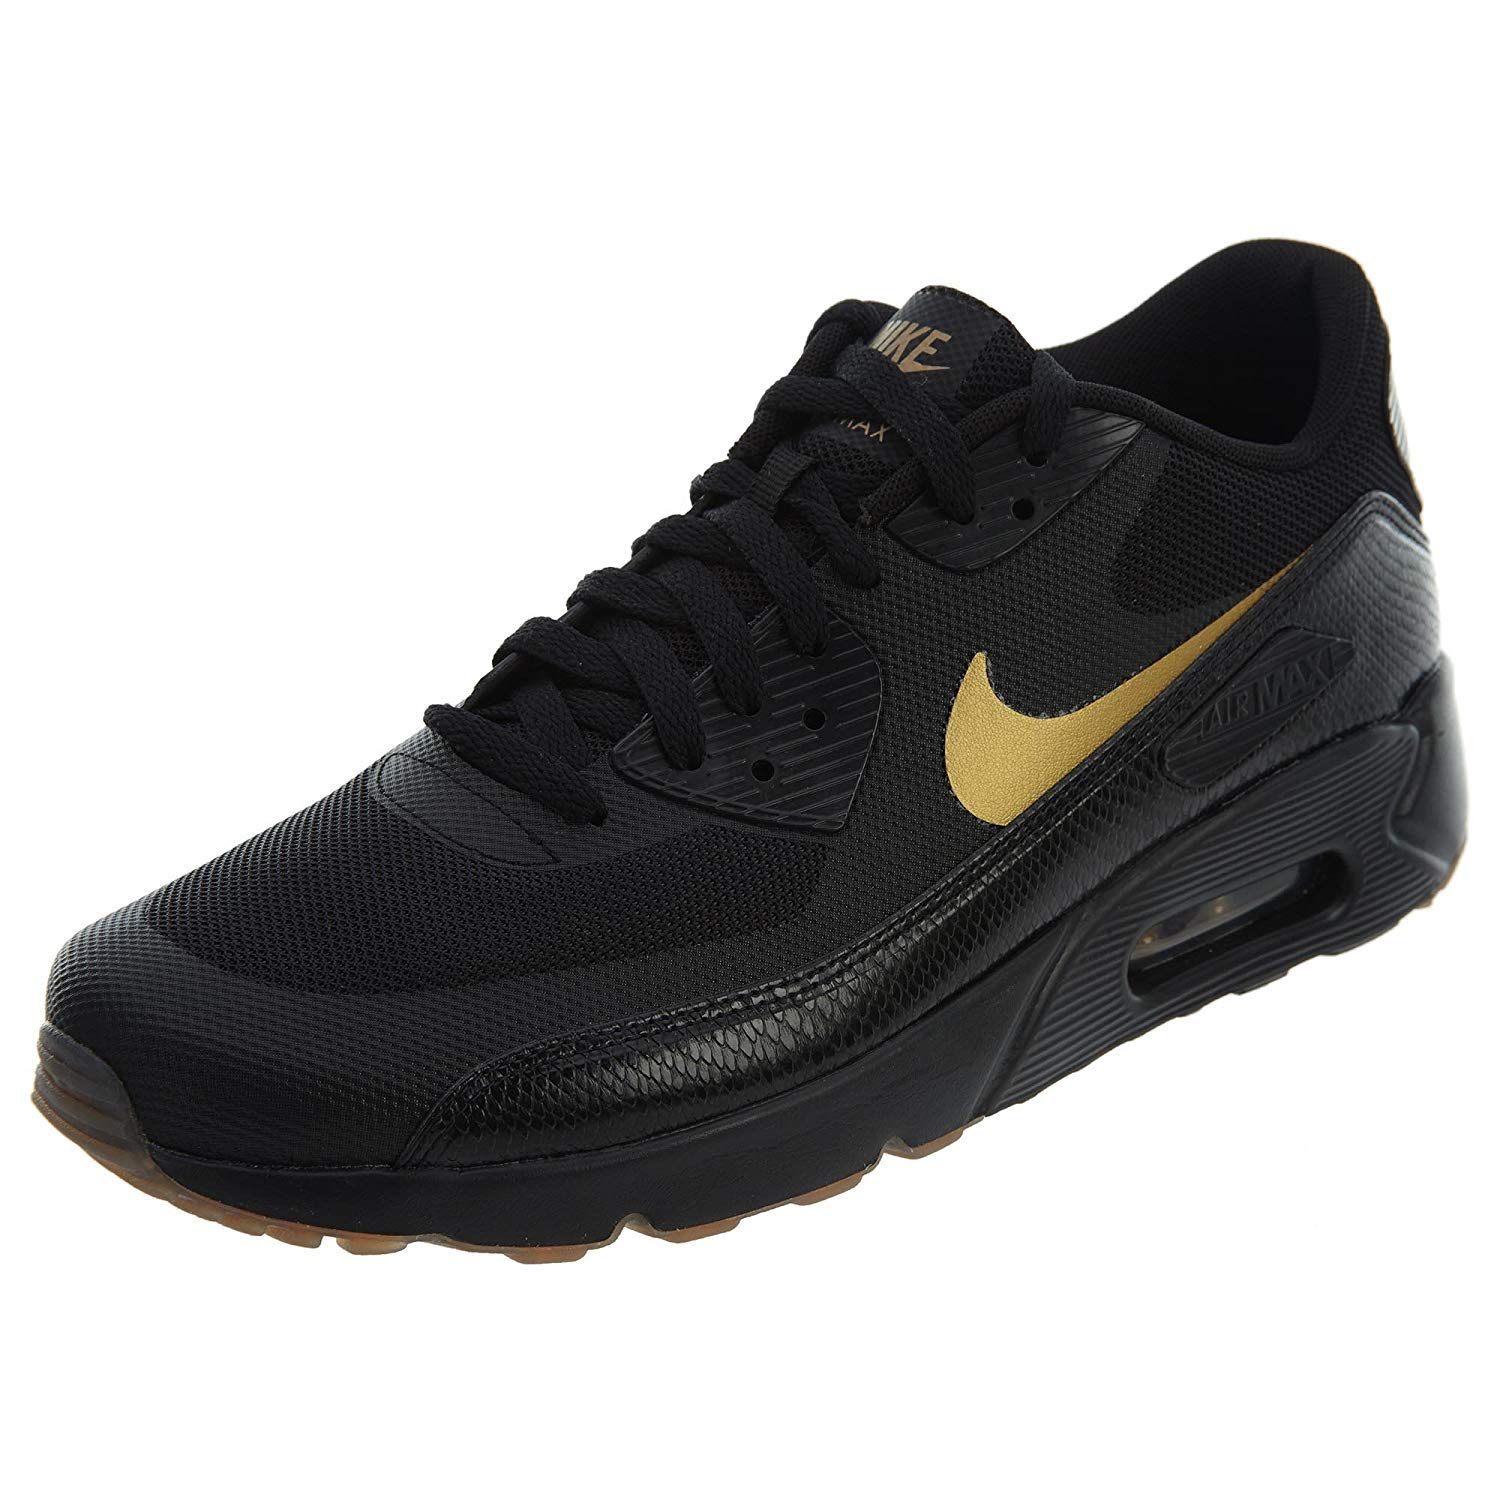 Nike Men's Air Max 90 Essential Low Top Sneakers (11 M US, BlackMetallic Gold)